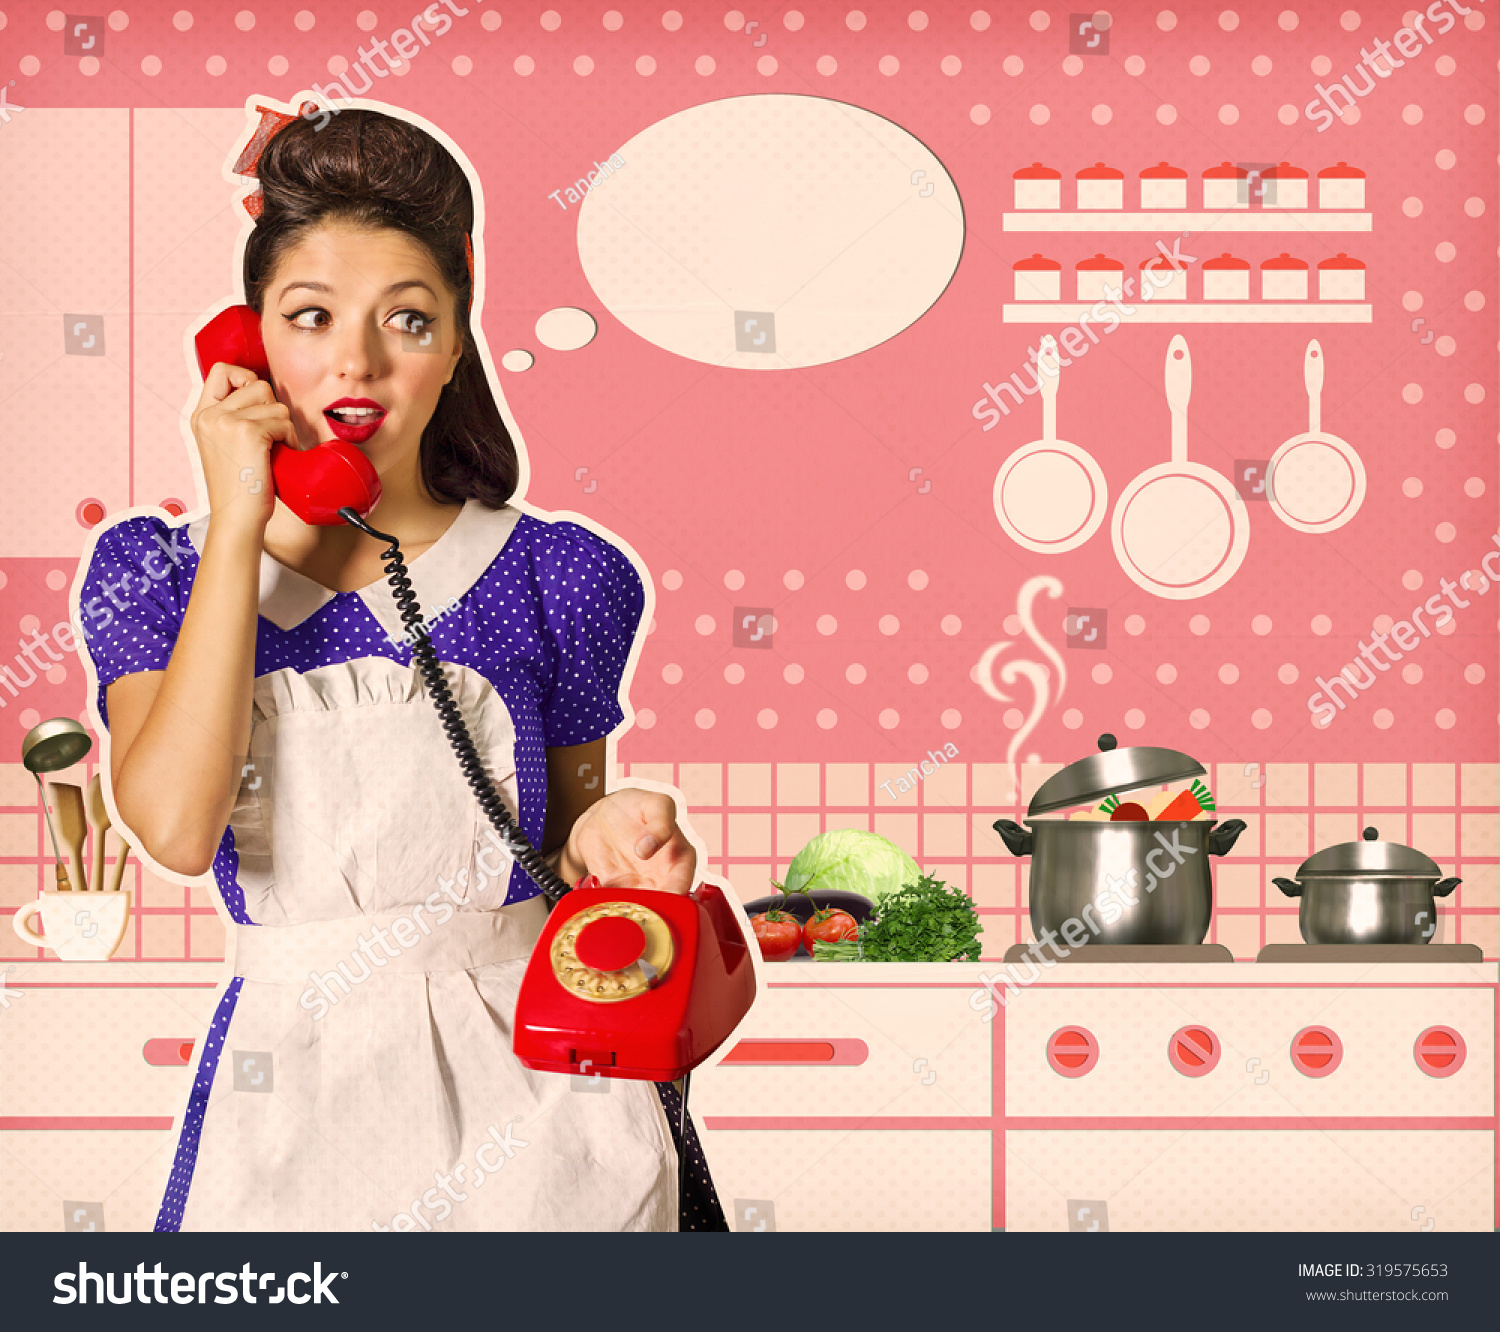 Retro Woman In Kitchen: Retro Young Woman Talking Cooking On Stock Photo 319575653